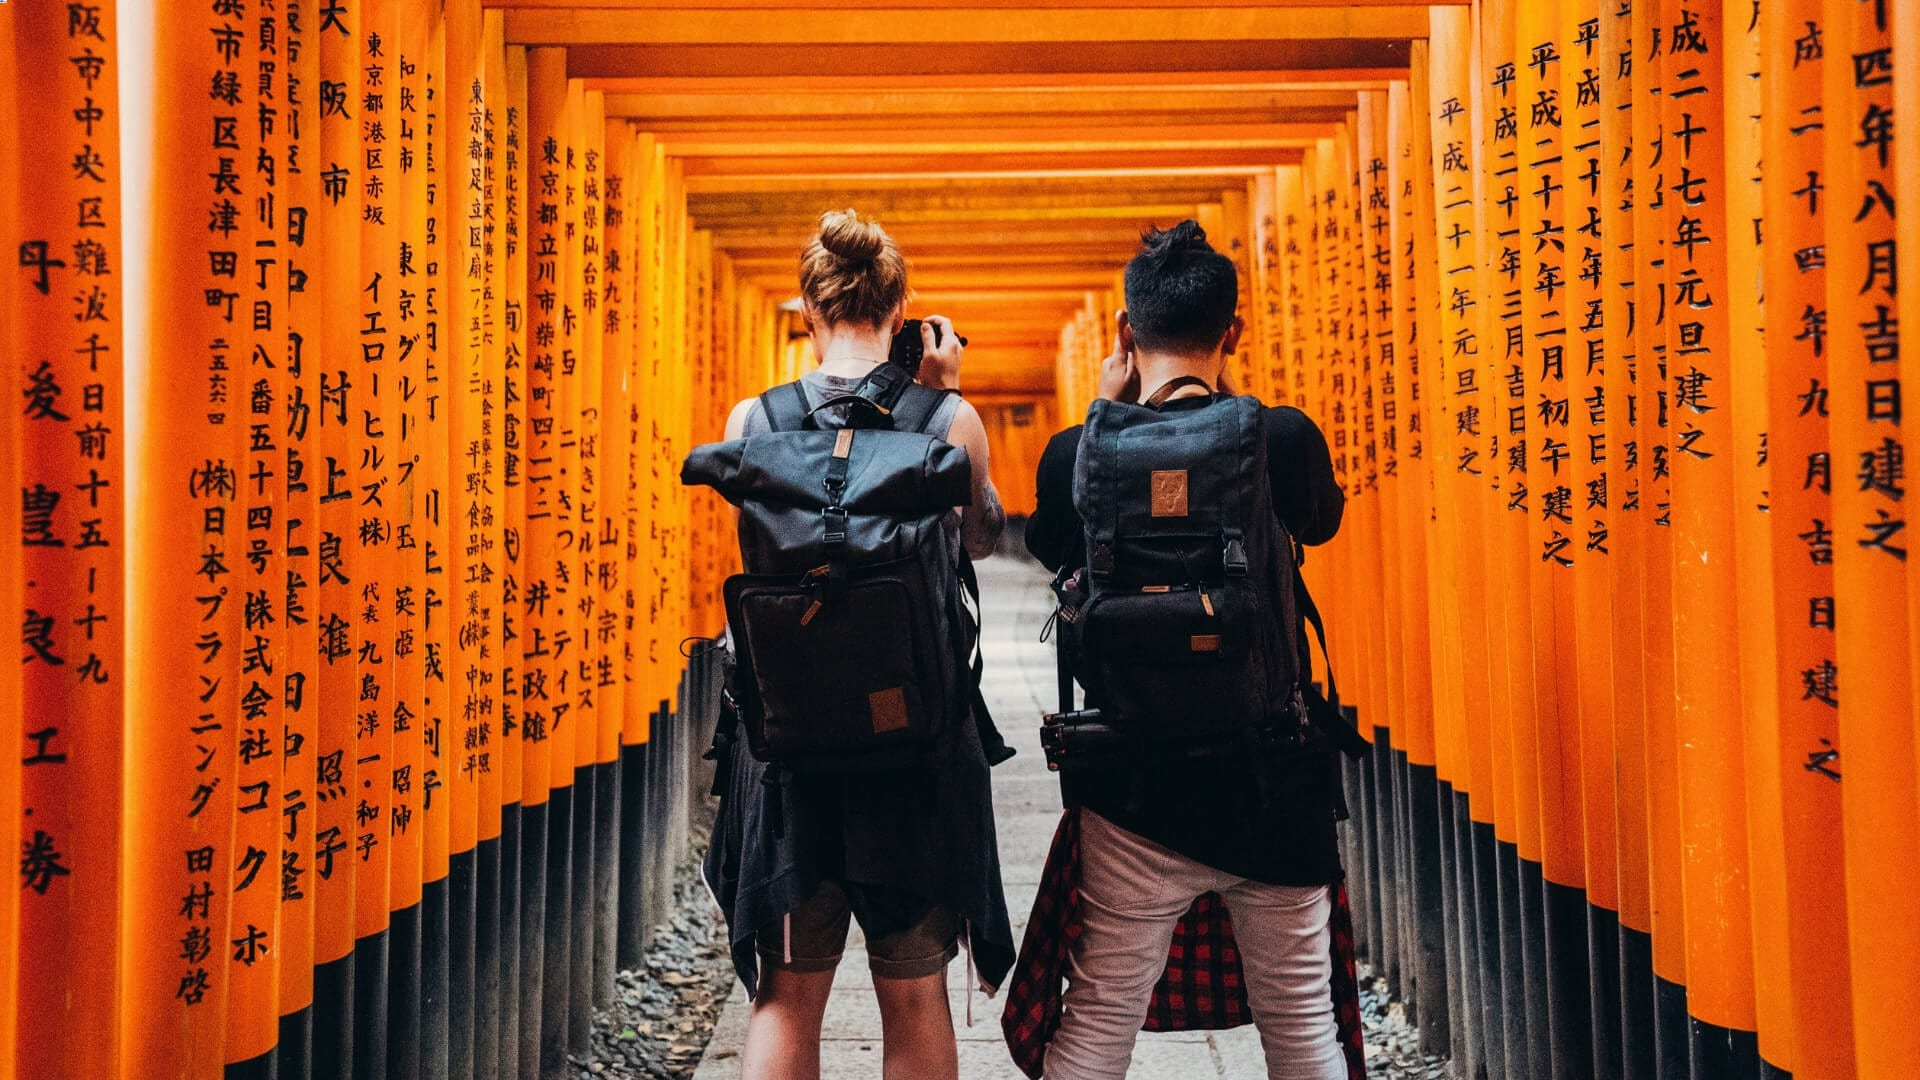 Two men are standing in a tunnel made of orange poles while they are making a picture in China.